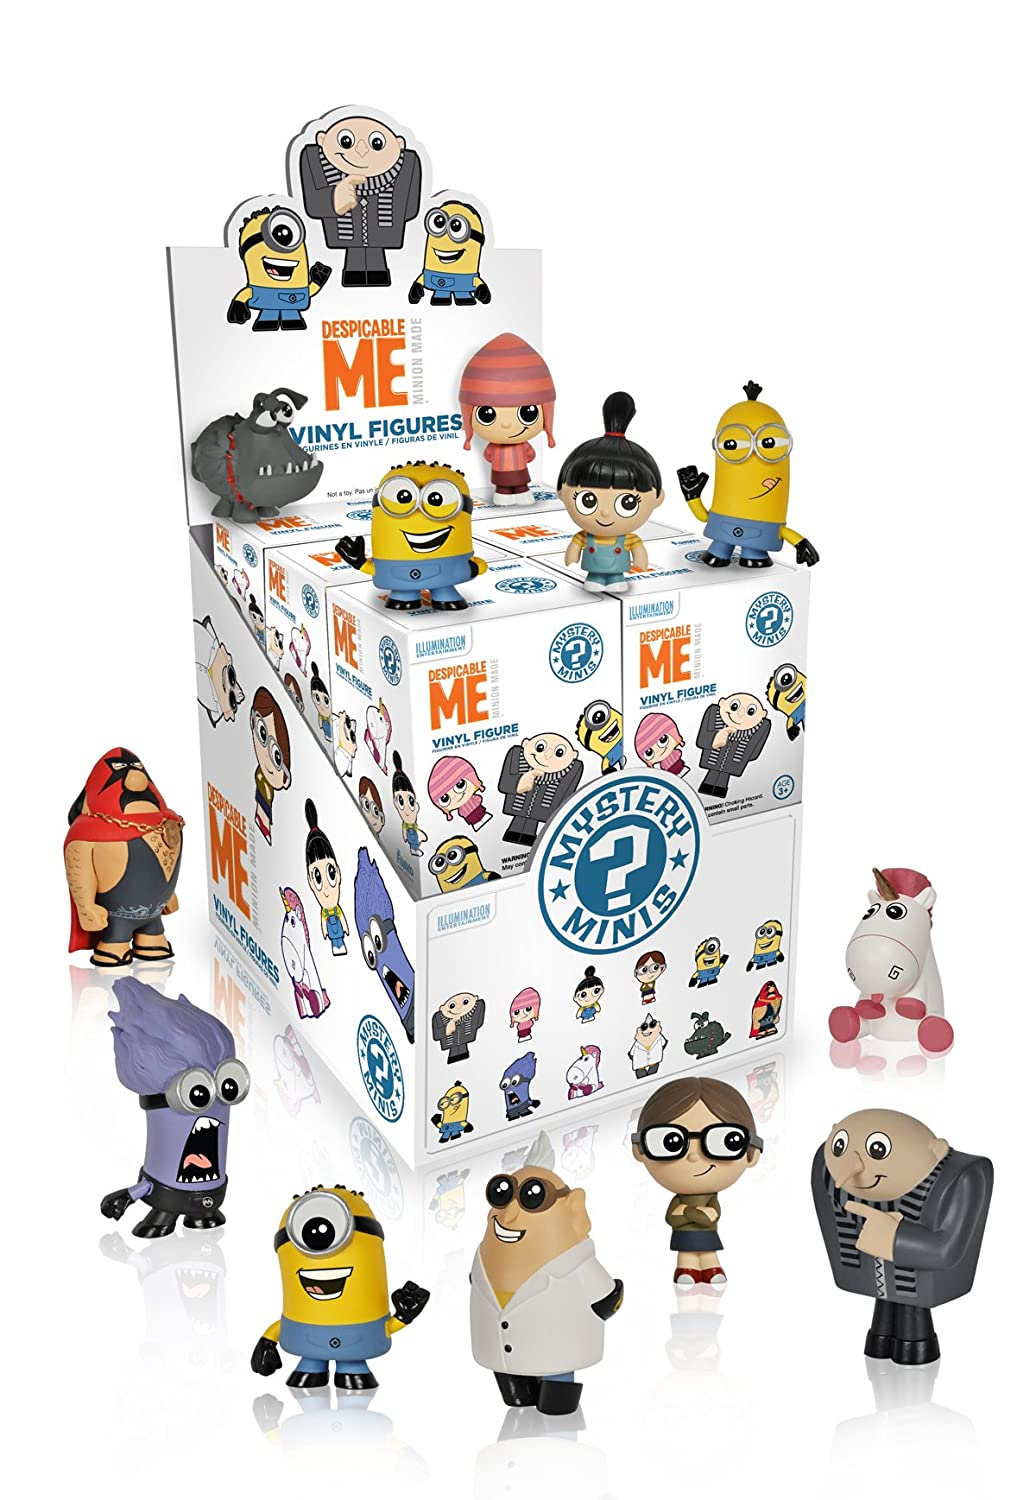 Product Despicable Me Blind Box Figure 4282 Misc Funko Mystery Minis